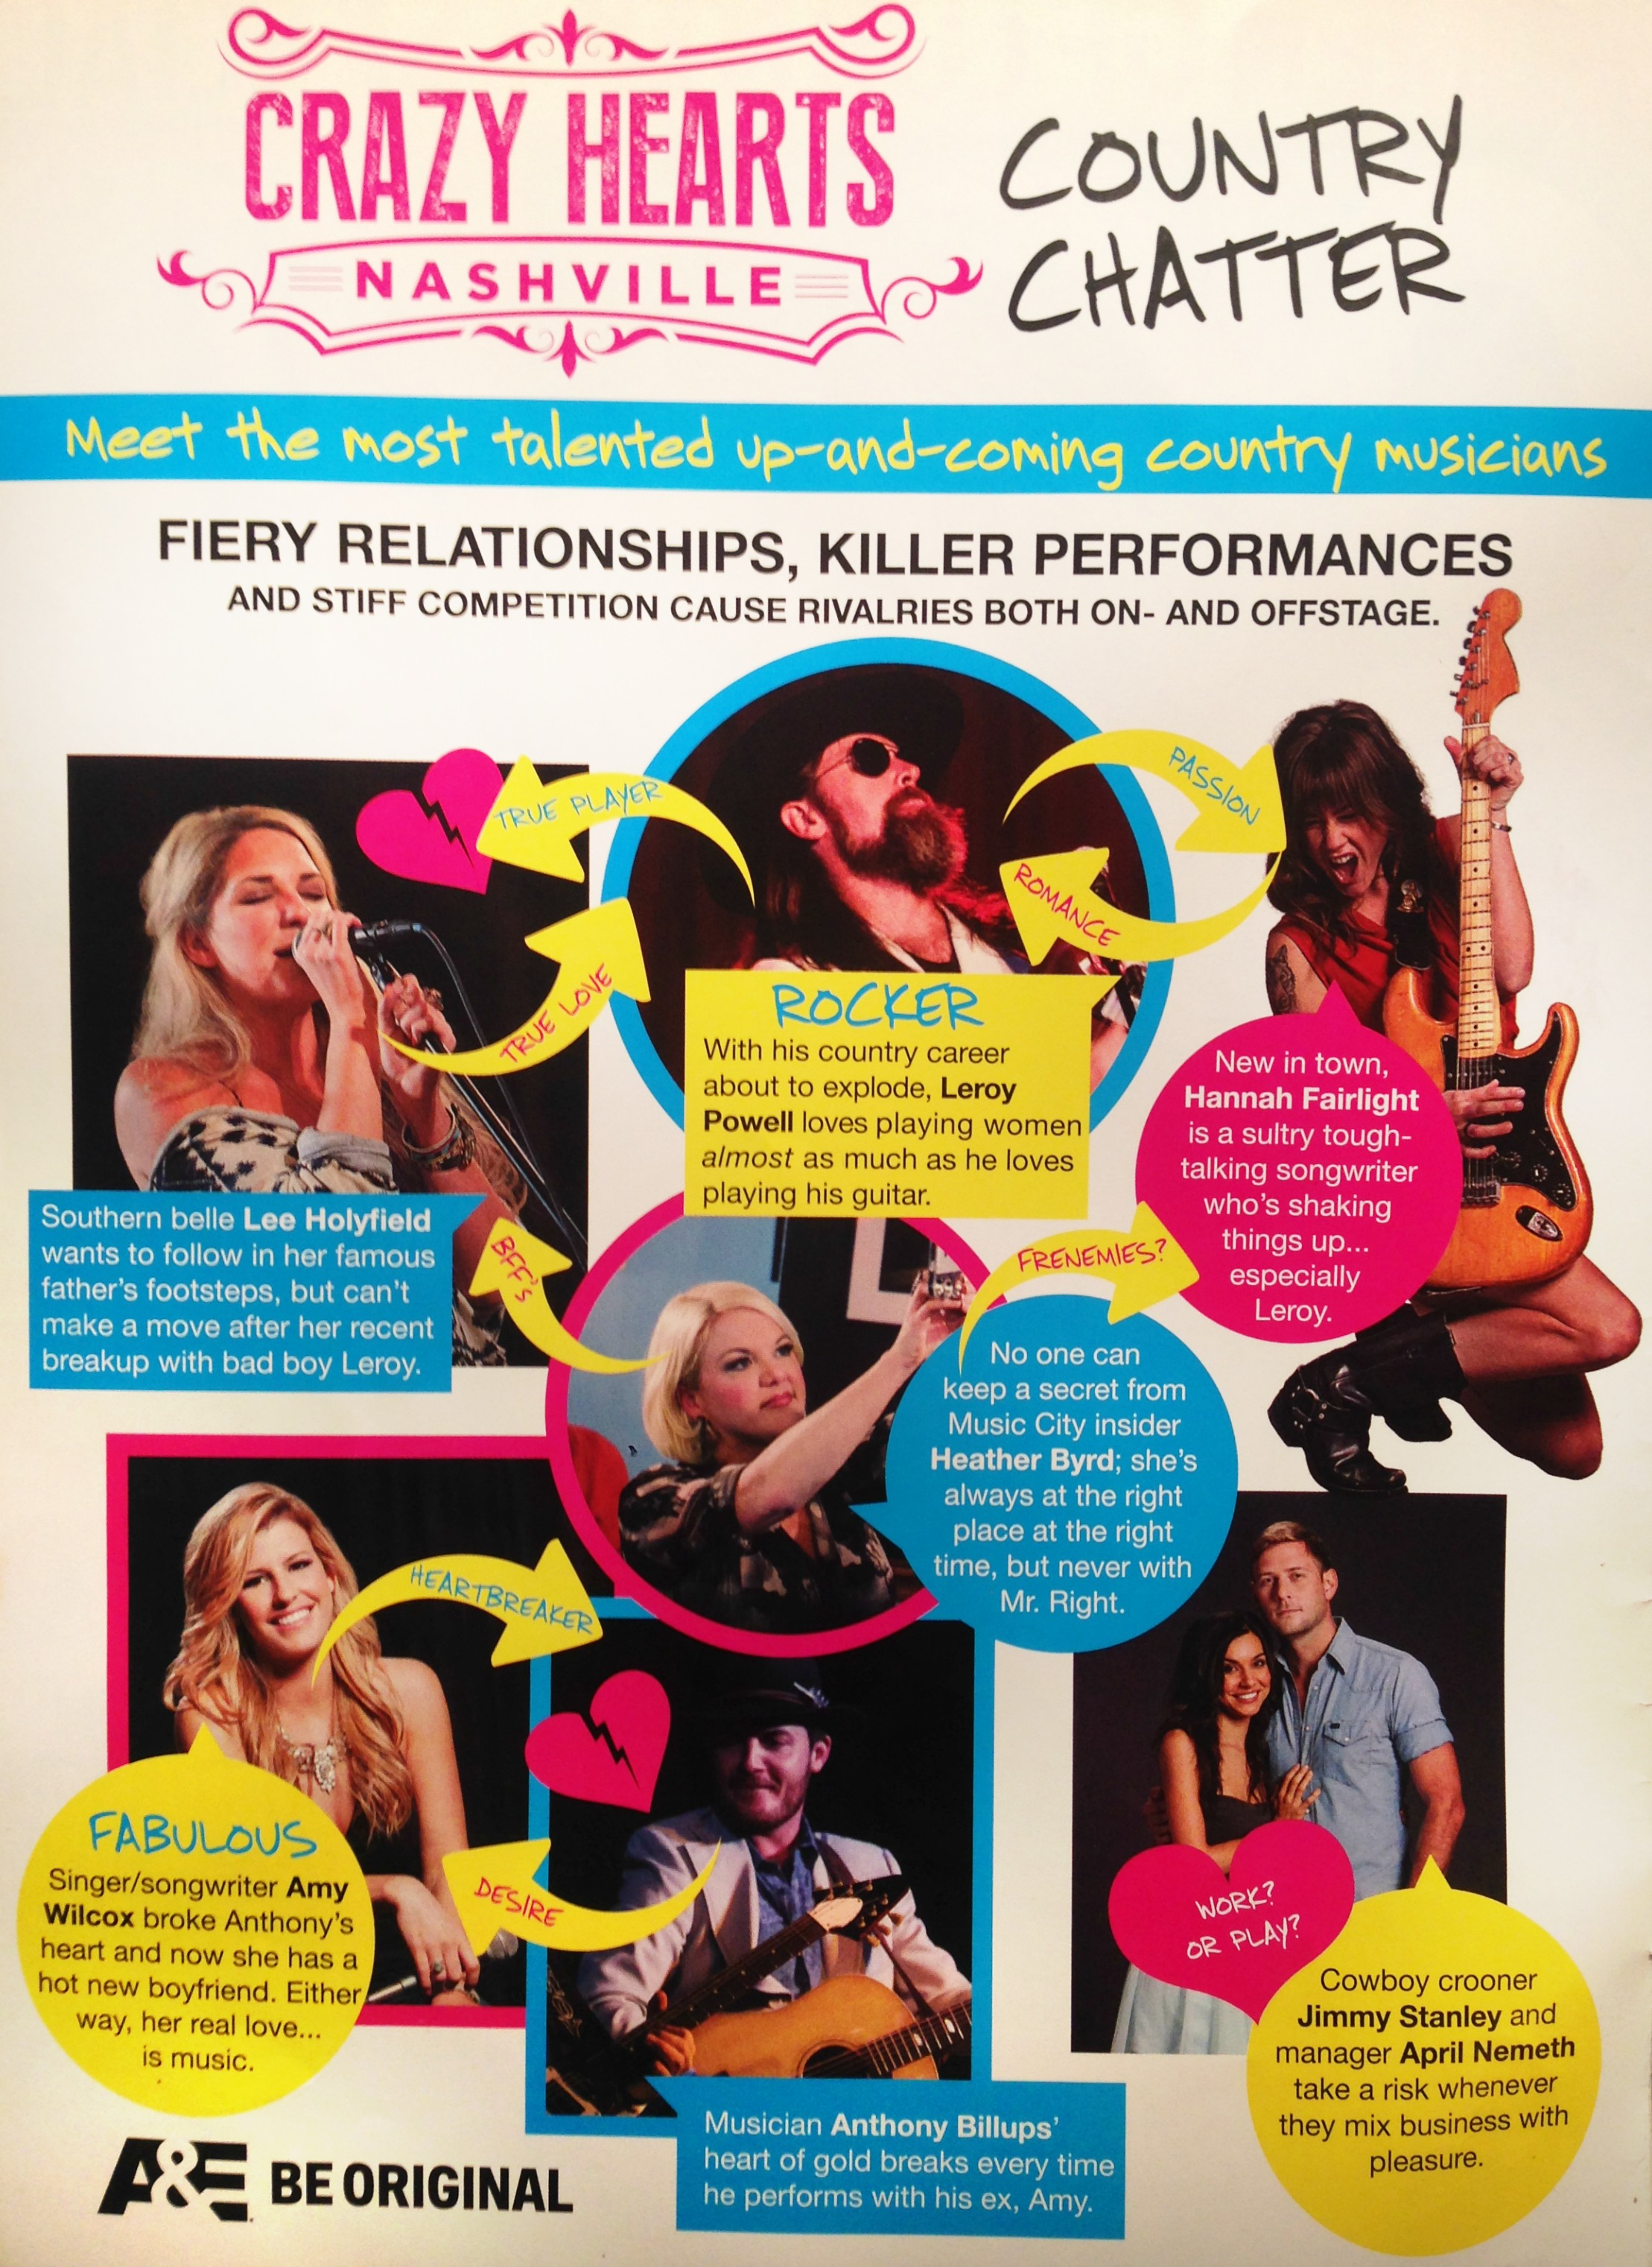 JANUARY 2014:  OK! MAGAZINE  FEATURES THE CAST OF CRAZY HEARTS: NASHVILLE IN THE JANUARY ISSUE